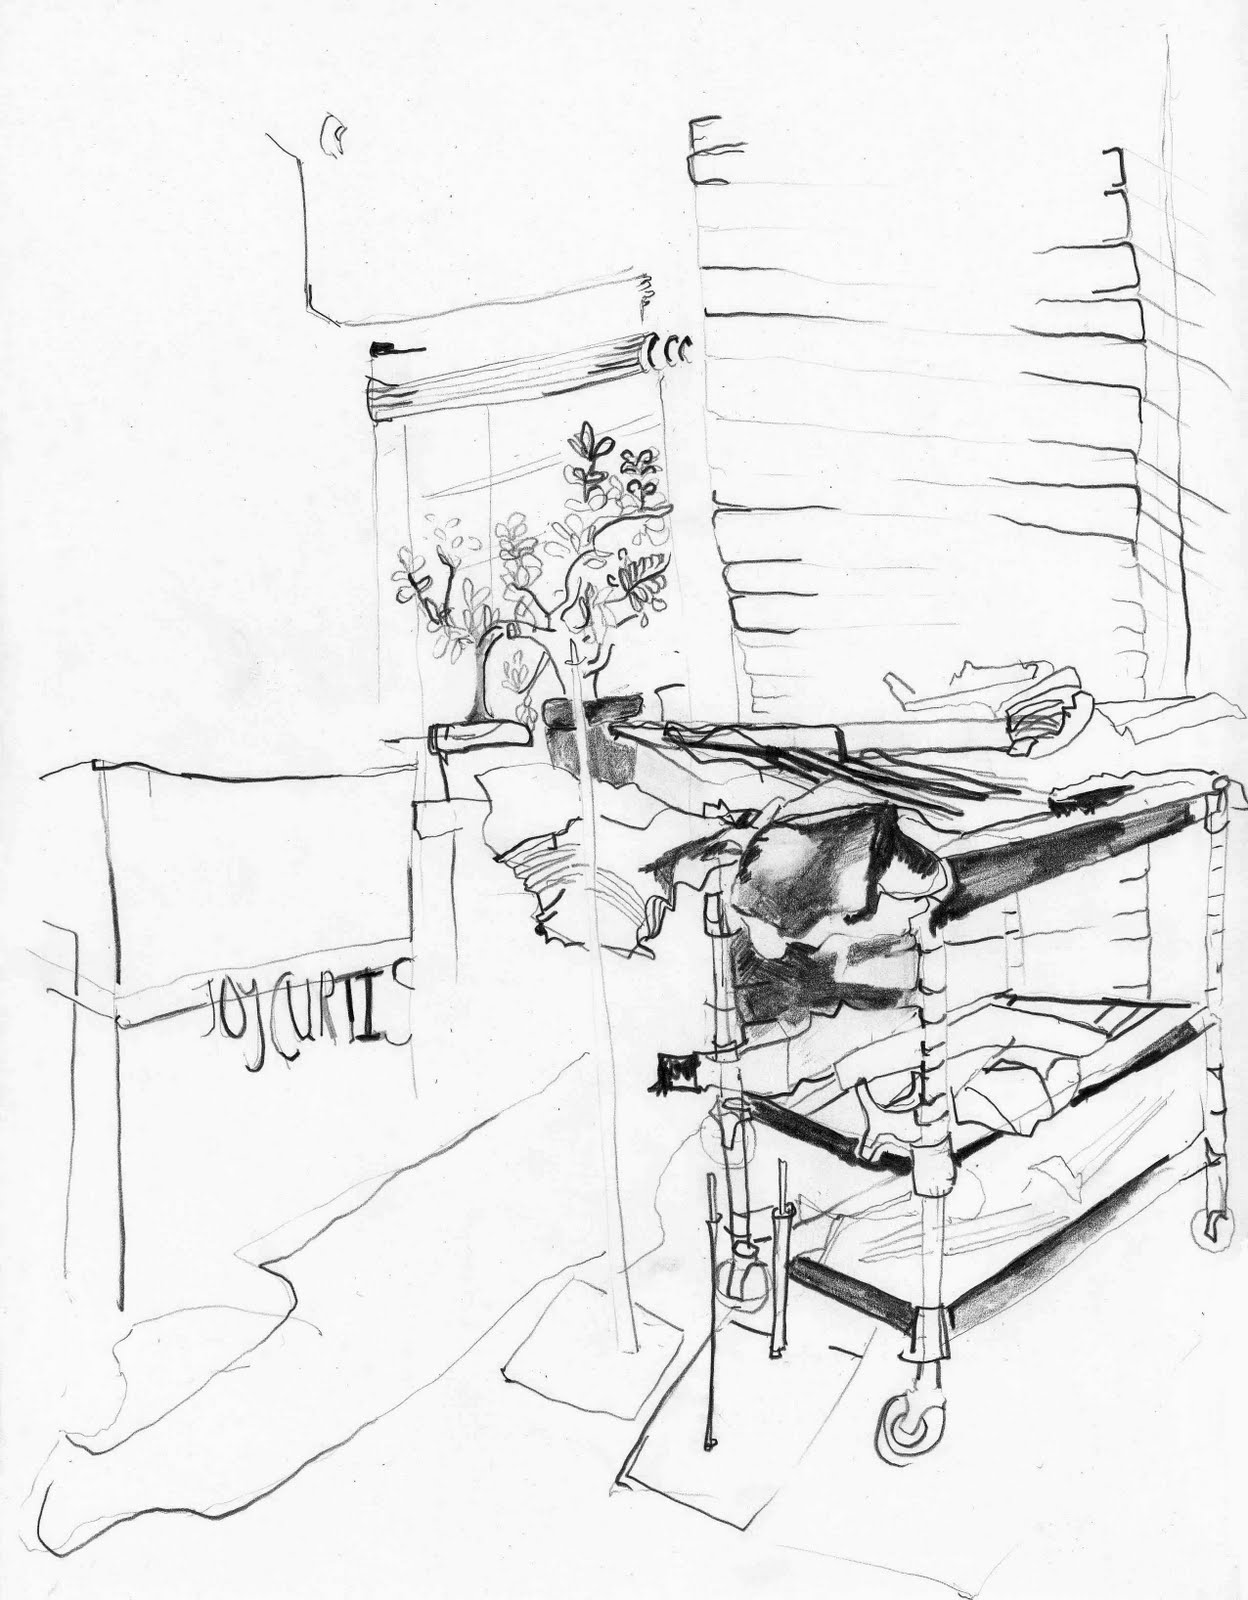 pencil in the studio april 2011 Glass Studio Desk it was like a home ing studio visit her sculptures were all wrapped up in blankets adding a special calmness and warmth to the space and our time